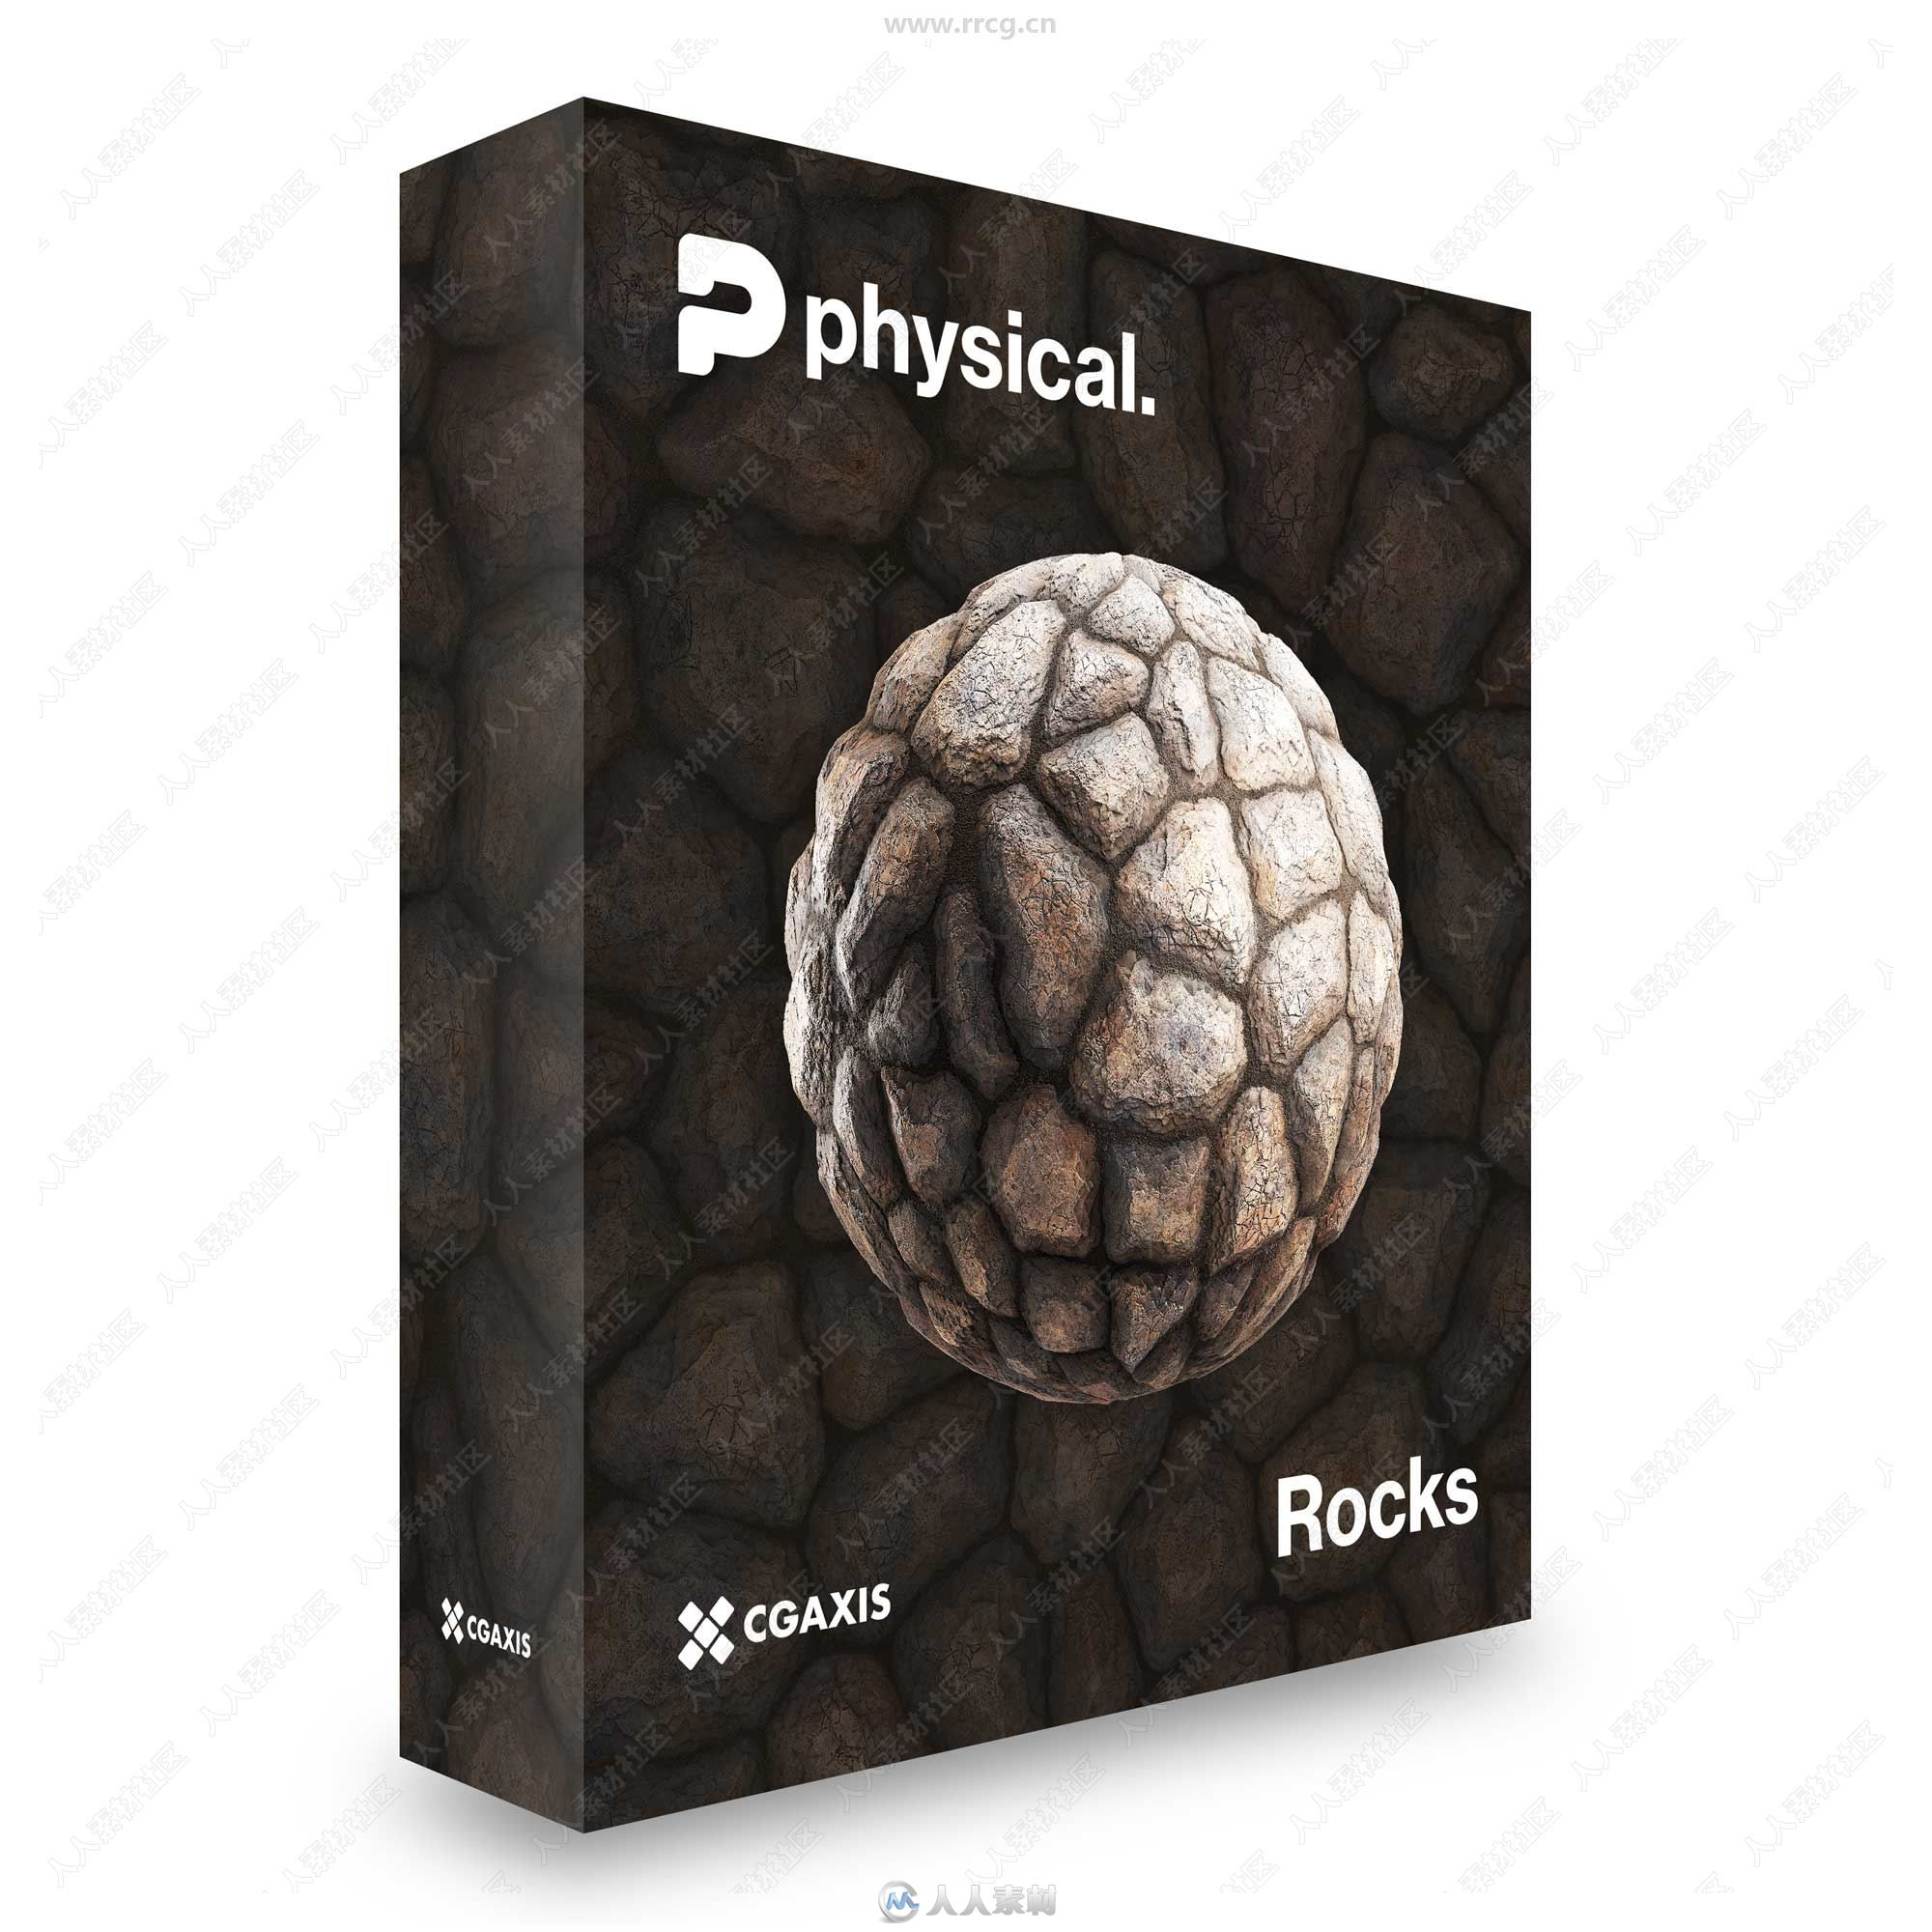 Physical-Rocks-Box.jpg